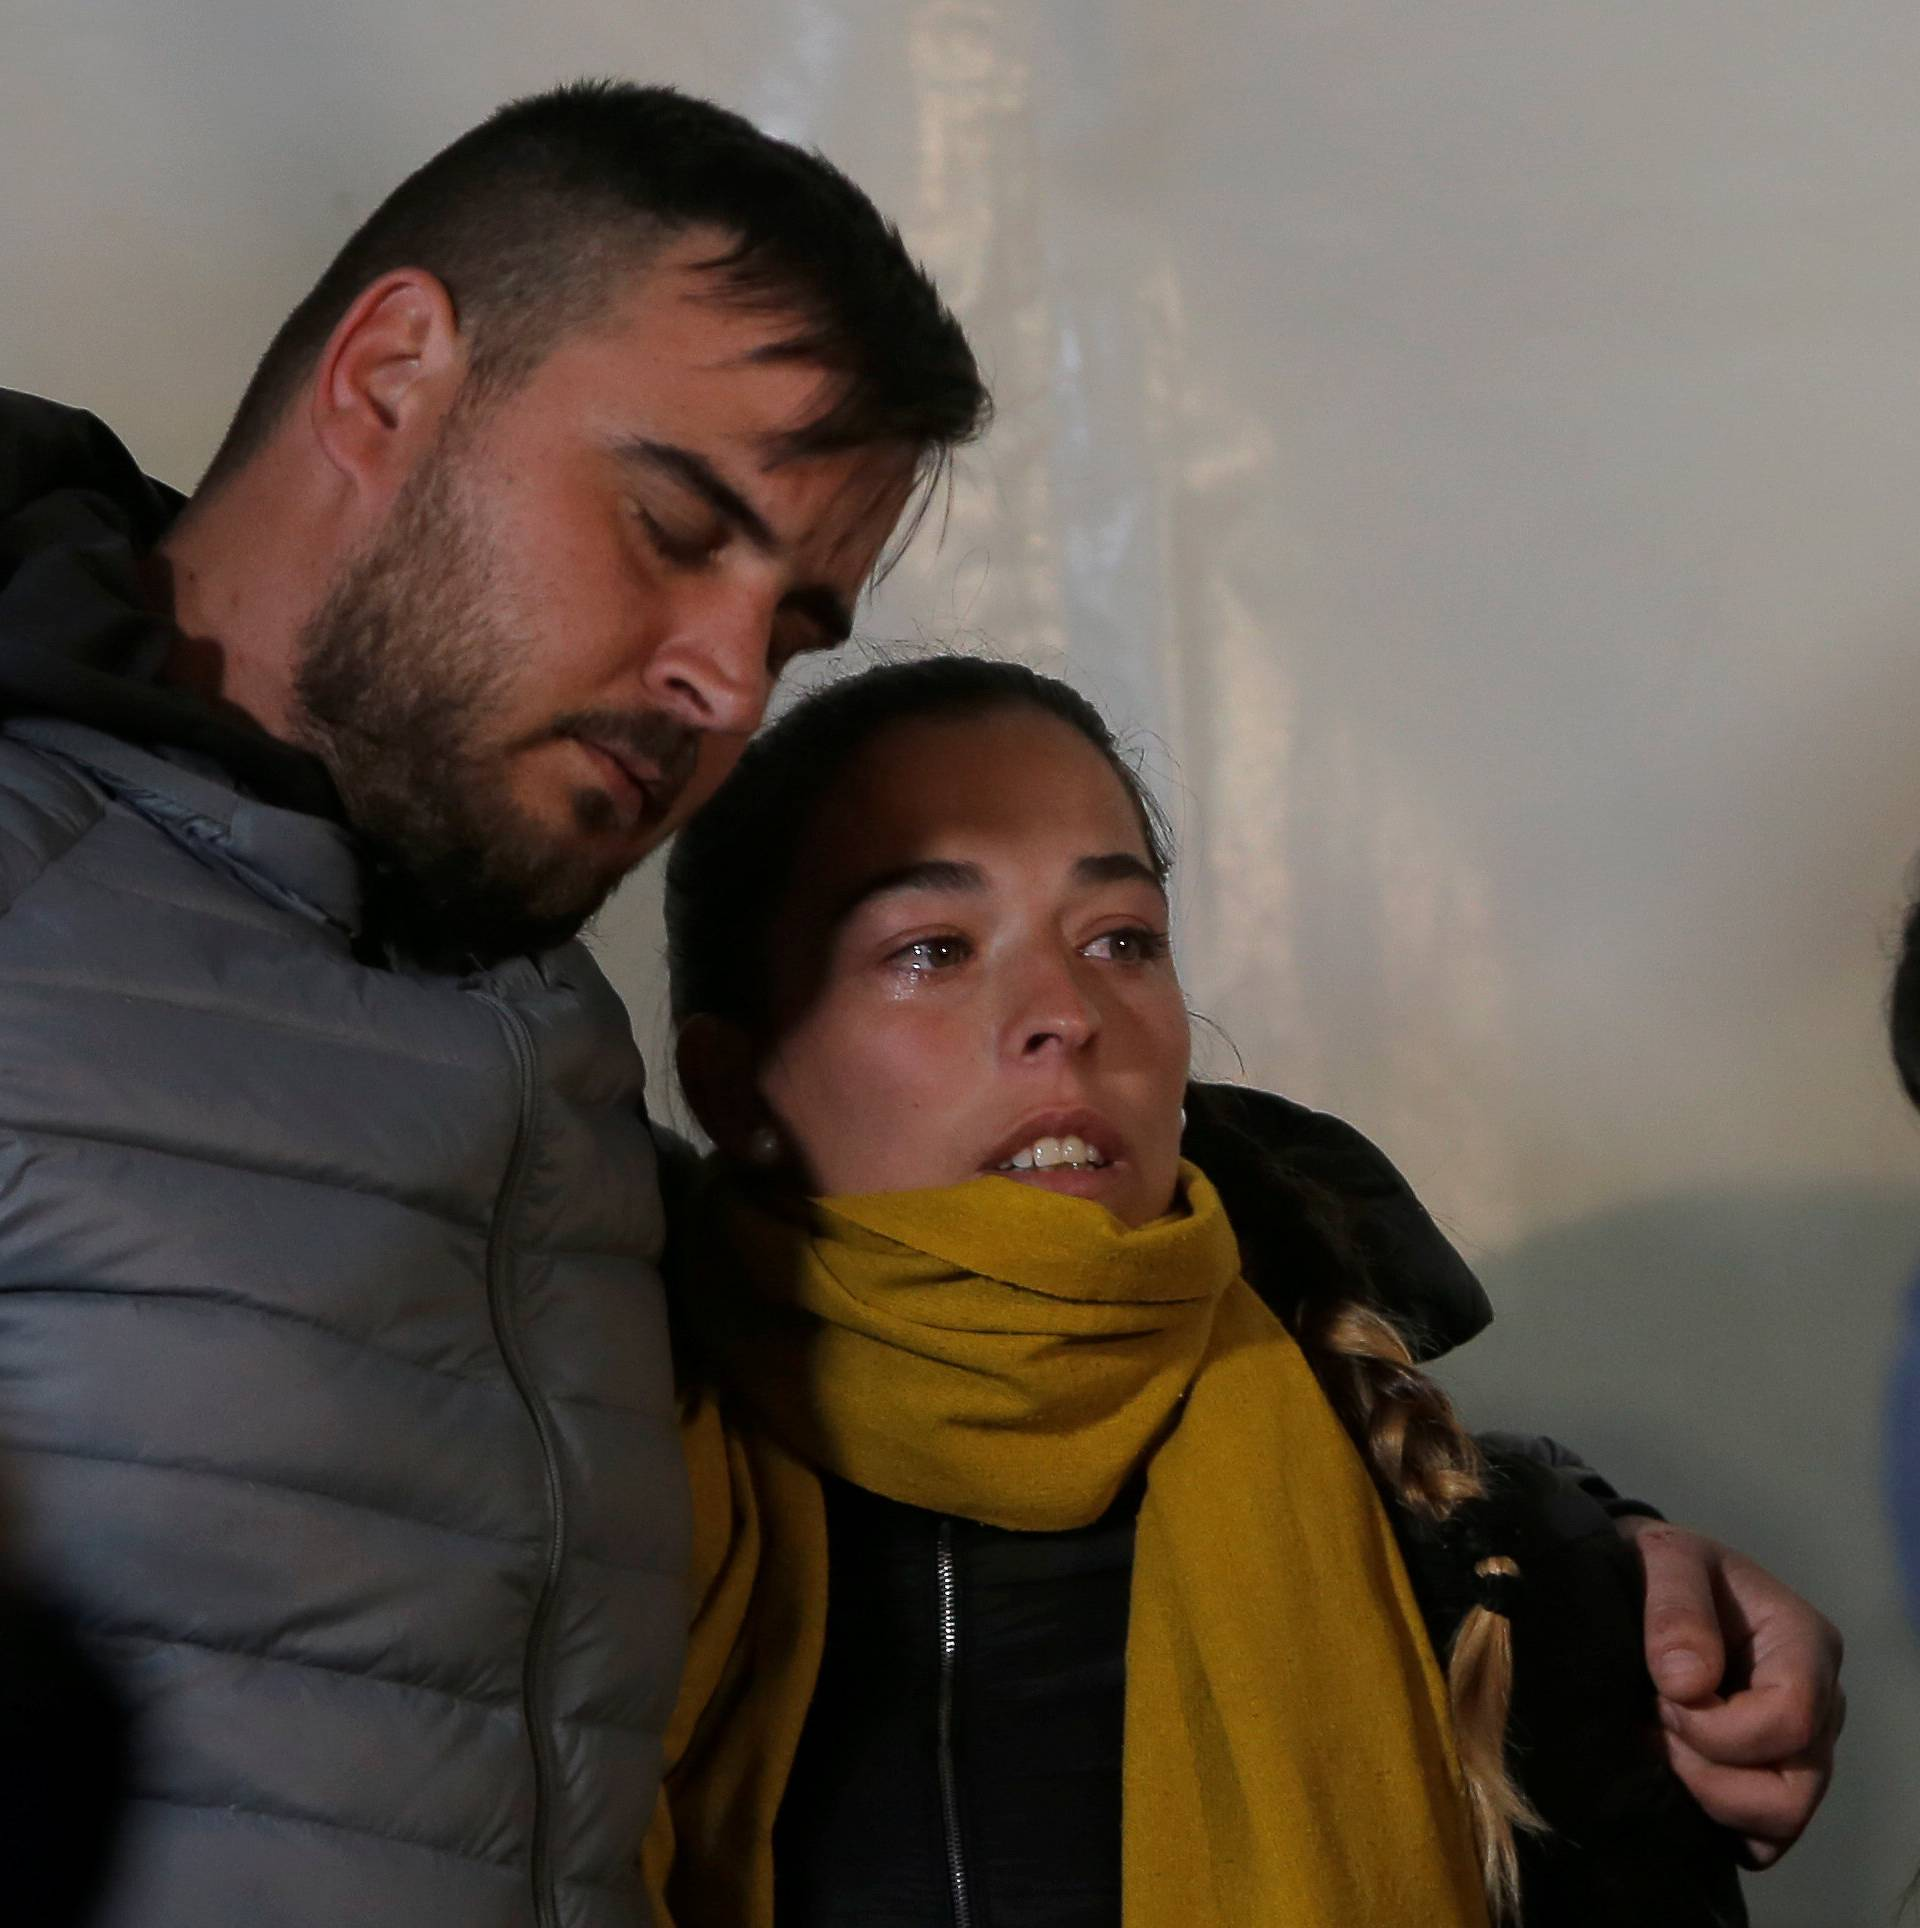 Julen's parents embrace with friends and relatives during a vigil as a miner rescuer team descends into a drilled well at the area where Julen, a Spanish two-year-old boy, fell into a deep well, in Totalan